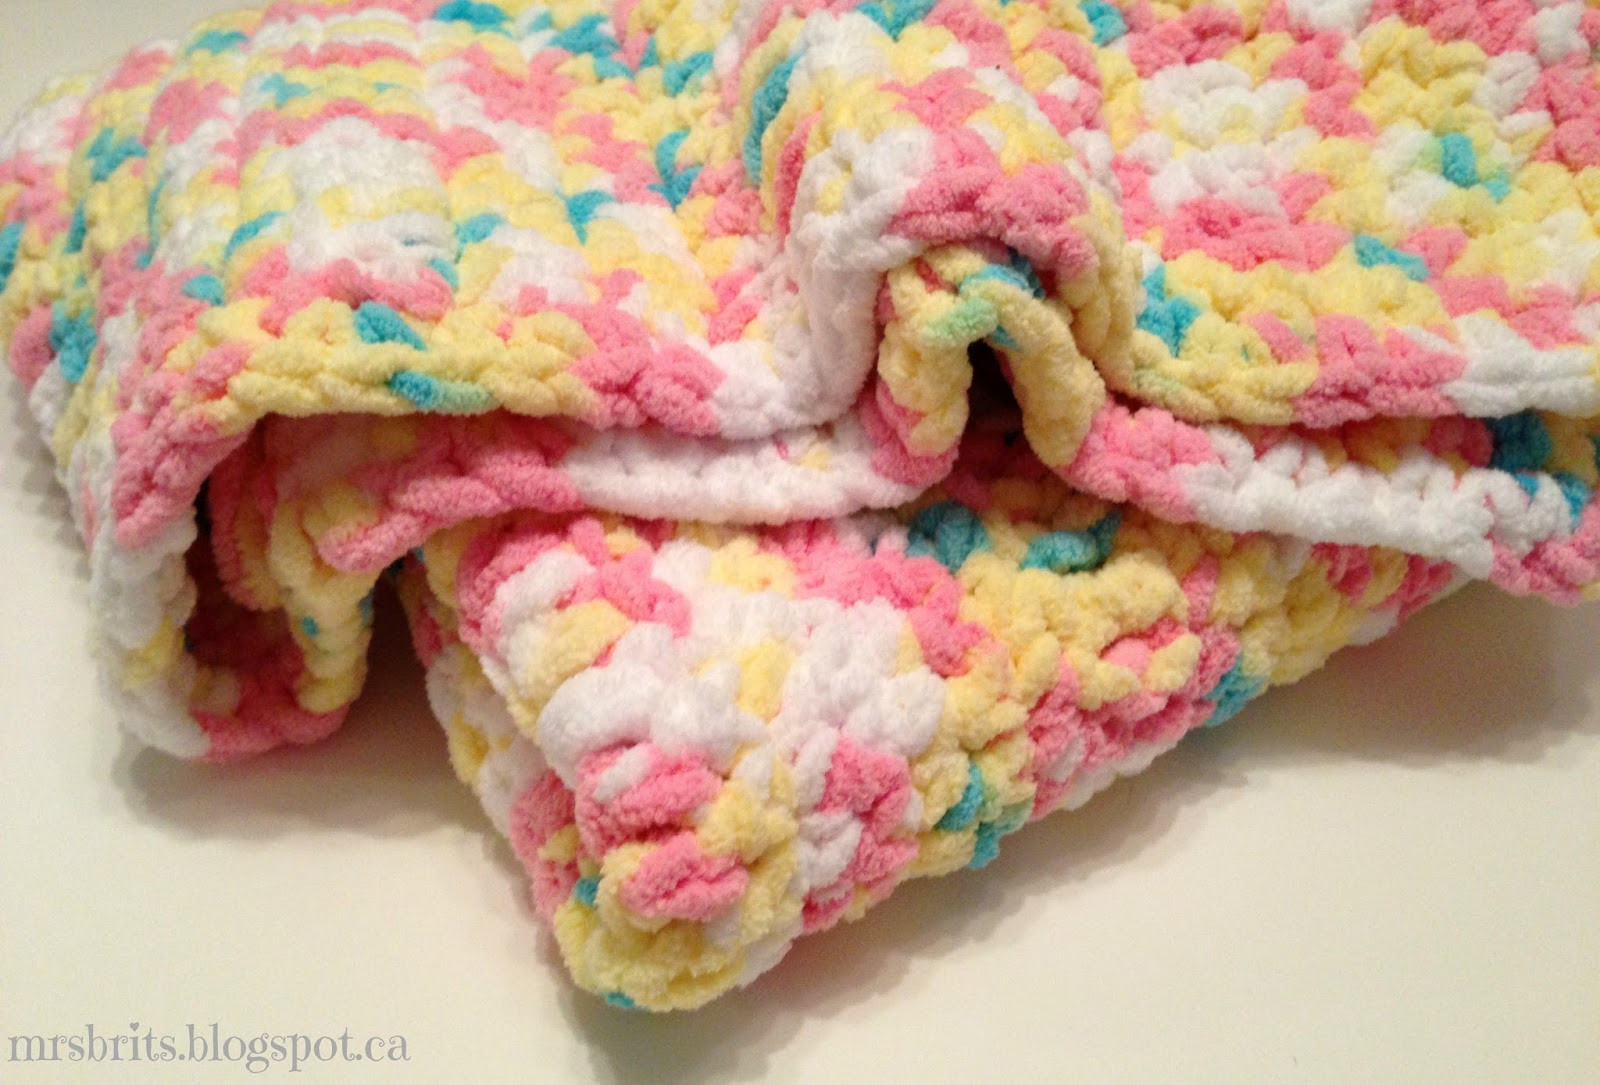 Chunky Knit Blanket Yarn New Mrsbrits Sweet and Chunky Baby Afghan Crochet Pattern Of New 40 Pictures Chunky Knit Blanket Yarn